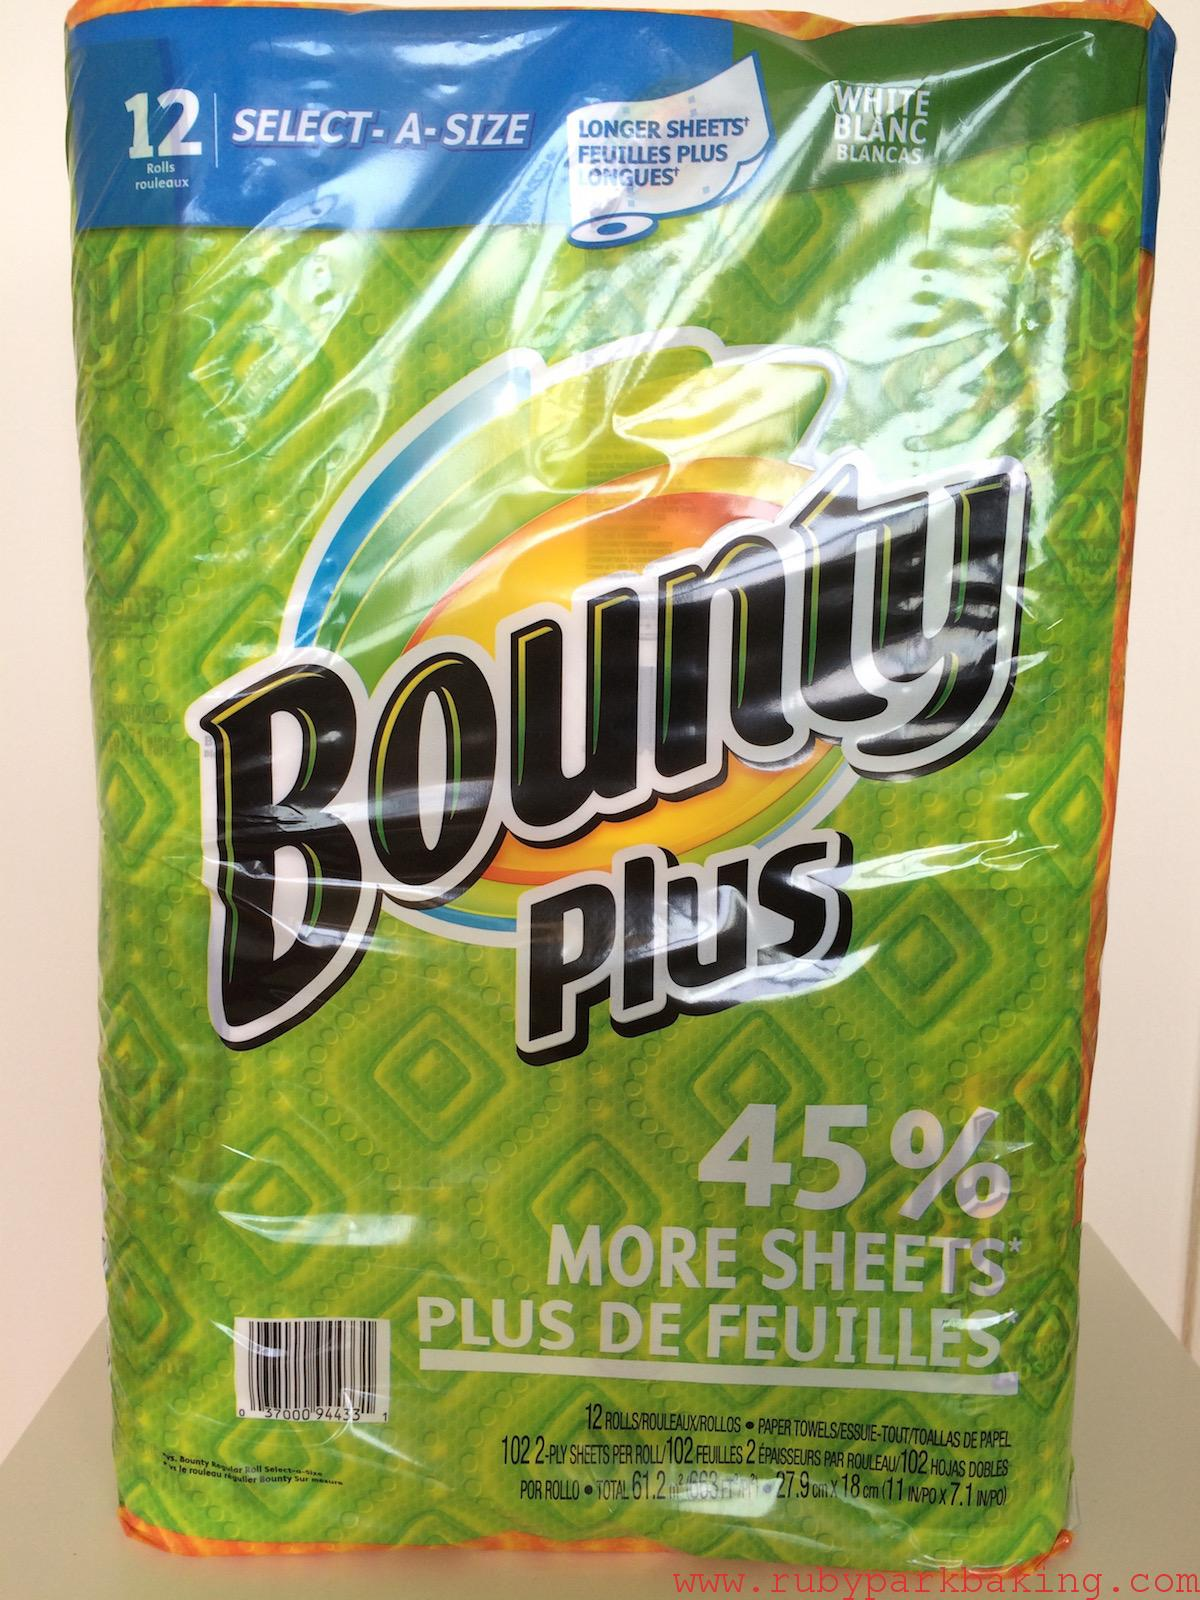 Bounty Paper Towel, Costco, Toronto